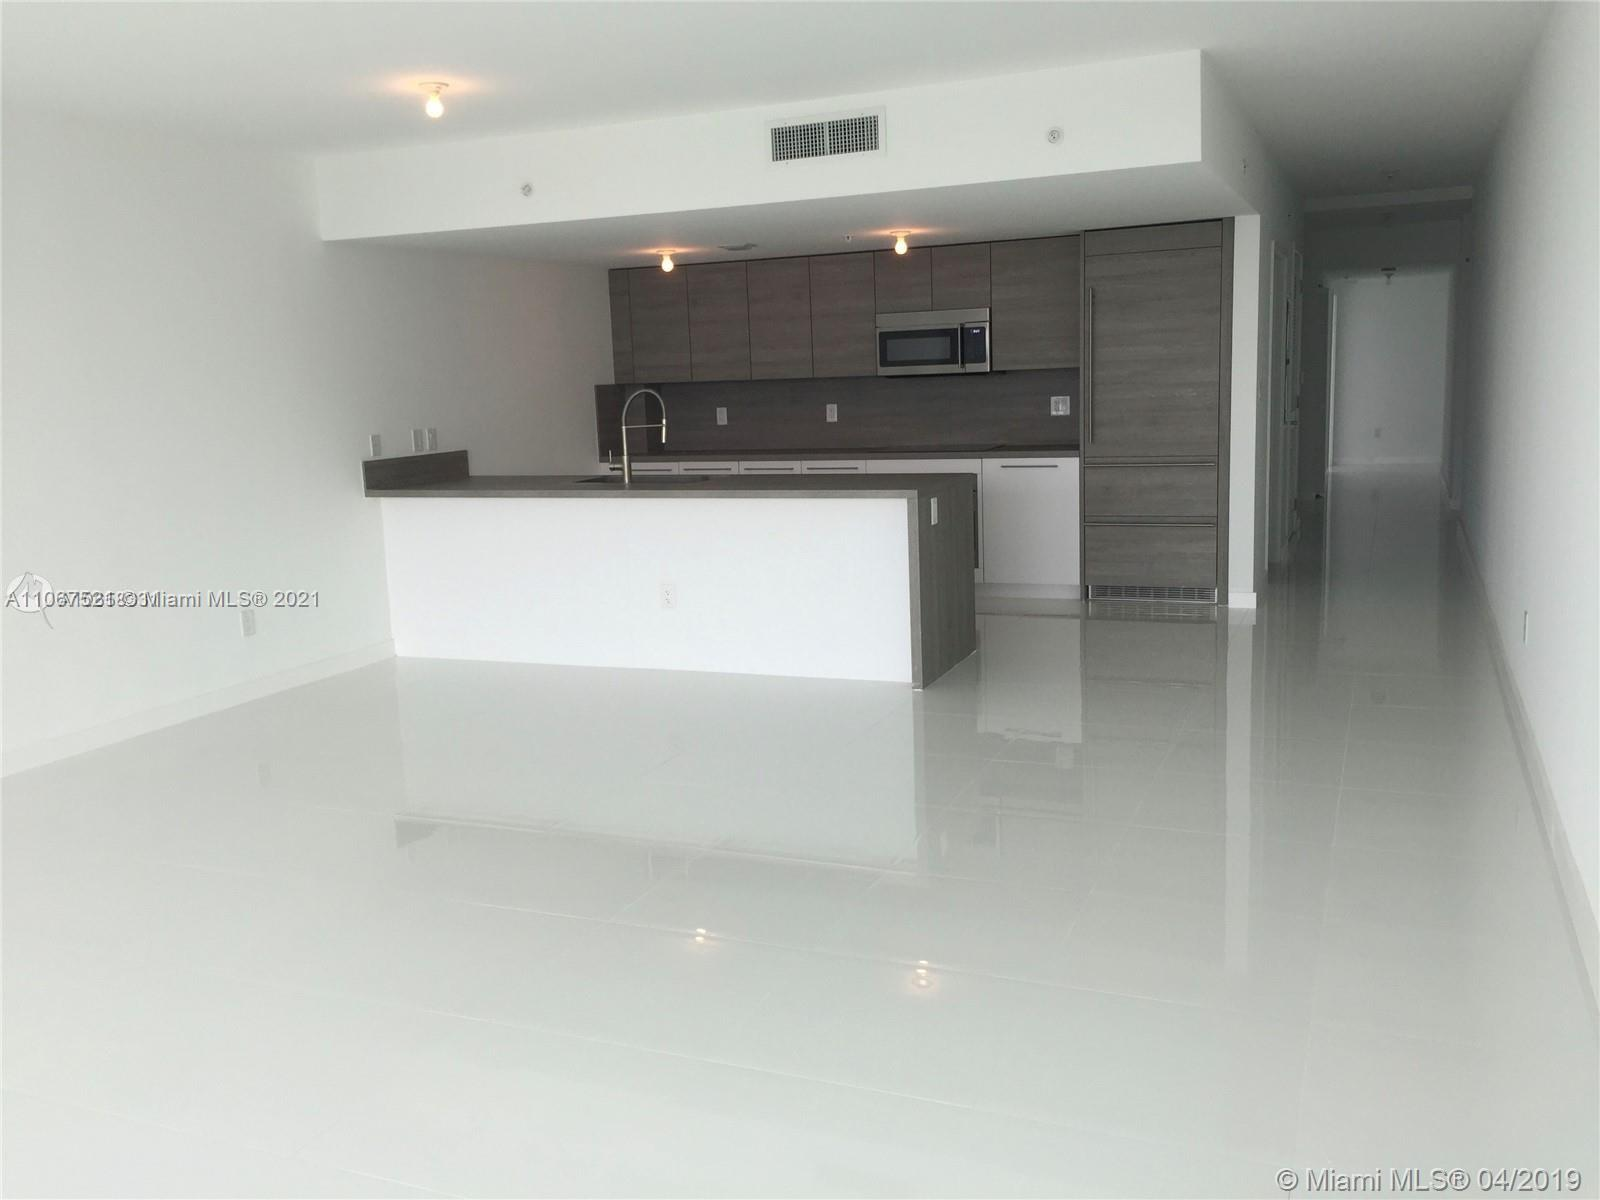 Come see this luxurious 3/2.5 unit right on the bay! Fantastic location just minutes from entertainment, beaches, restaurants, countless shopping spots and the Aventura Mall. Unit features Italian cabinetry, quality stainless steel appliances, porcelain tile flooring throughout as well as custom made closets. 400 Sunny is a breathtaking condominium boasting resort style amenities including a complete spa with steam room + sauna, infinity pool overlooking the bay with cabanas, jacuzzis, tennis courts and a fully equipped gym. This unit also INCLUDES A DRY DOCK SLIP DD-320 (up to 35 feet) right at the 400 Sunny dock. Don't miss out on this unique bundle!